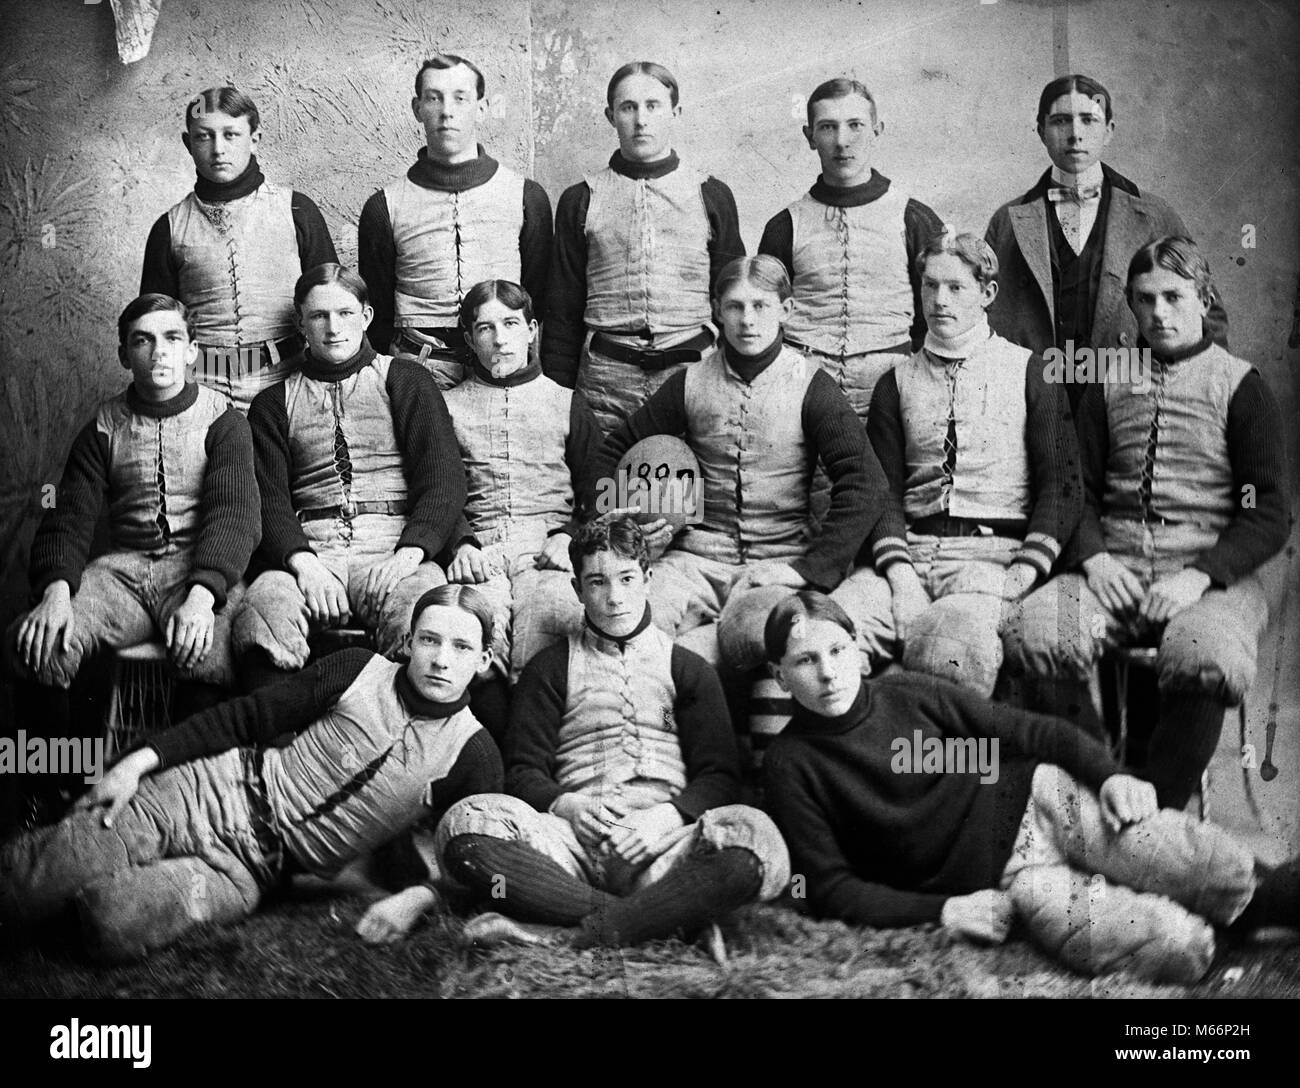 55f87a11285 1890s 1897 TURN OF 20TH CENTURY GROUP PORTRAIT HIGH SCHOOL FOOTBALL TEAM  PLAYERS WEARING TEAM UNIFORMS LOOKING AT CAMERA - o3704 LEF001 HARS EYE  CONTACT ...